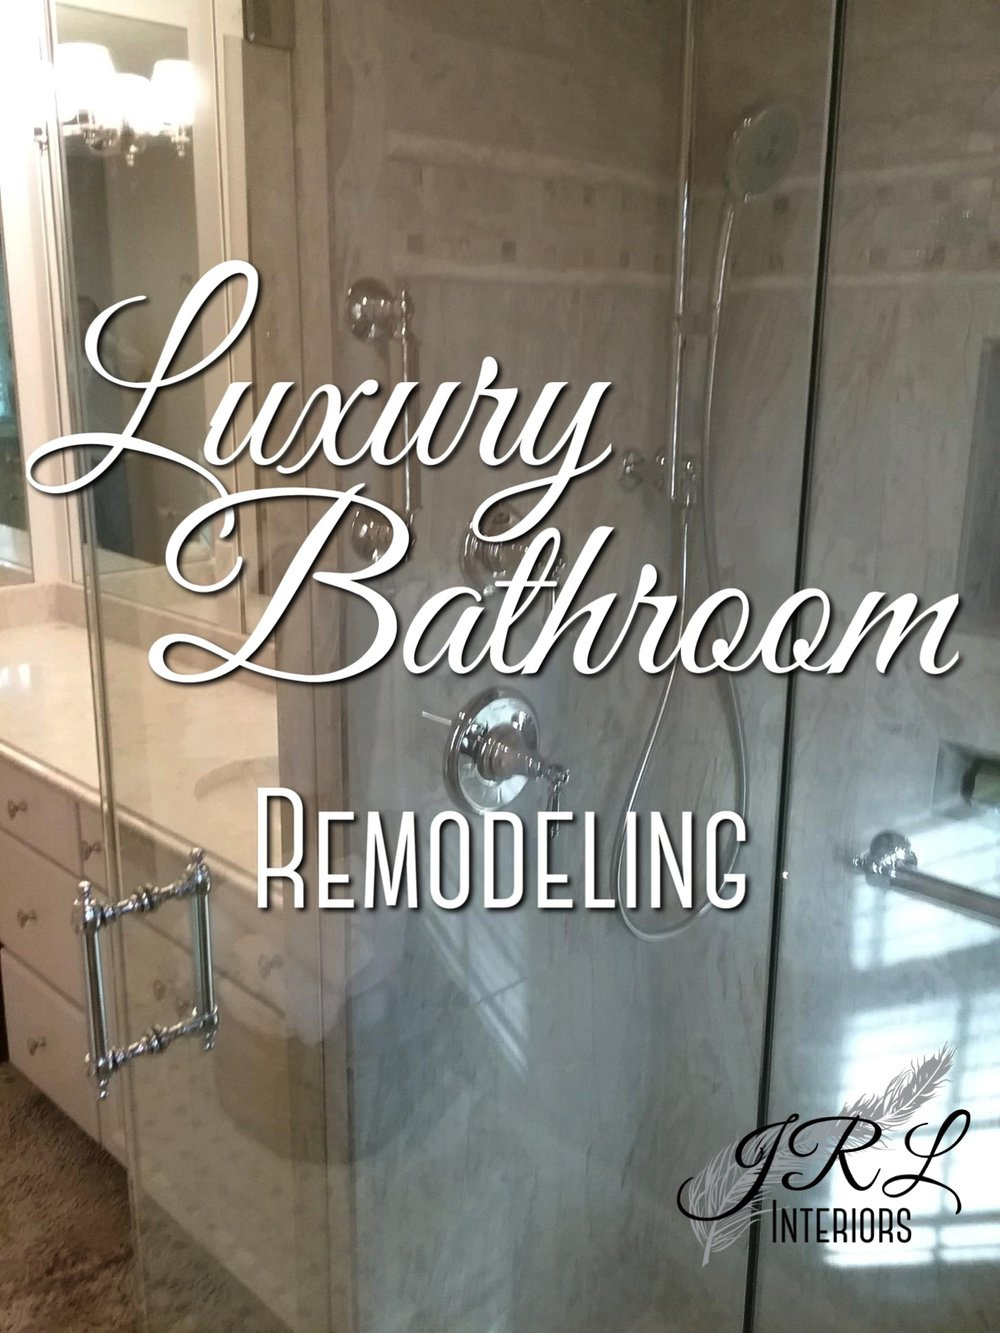 Luxury Bathroom Remodeling.jpg